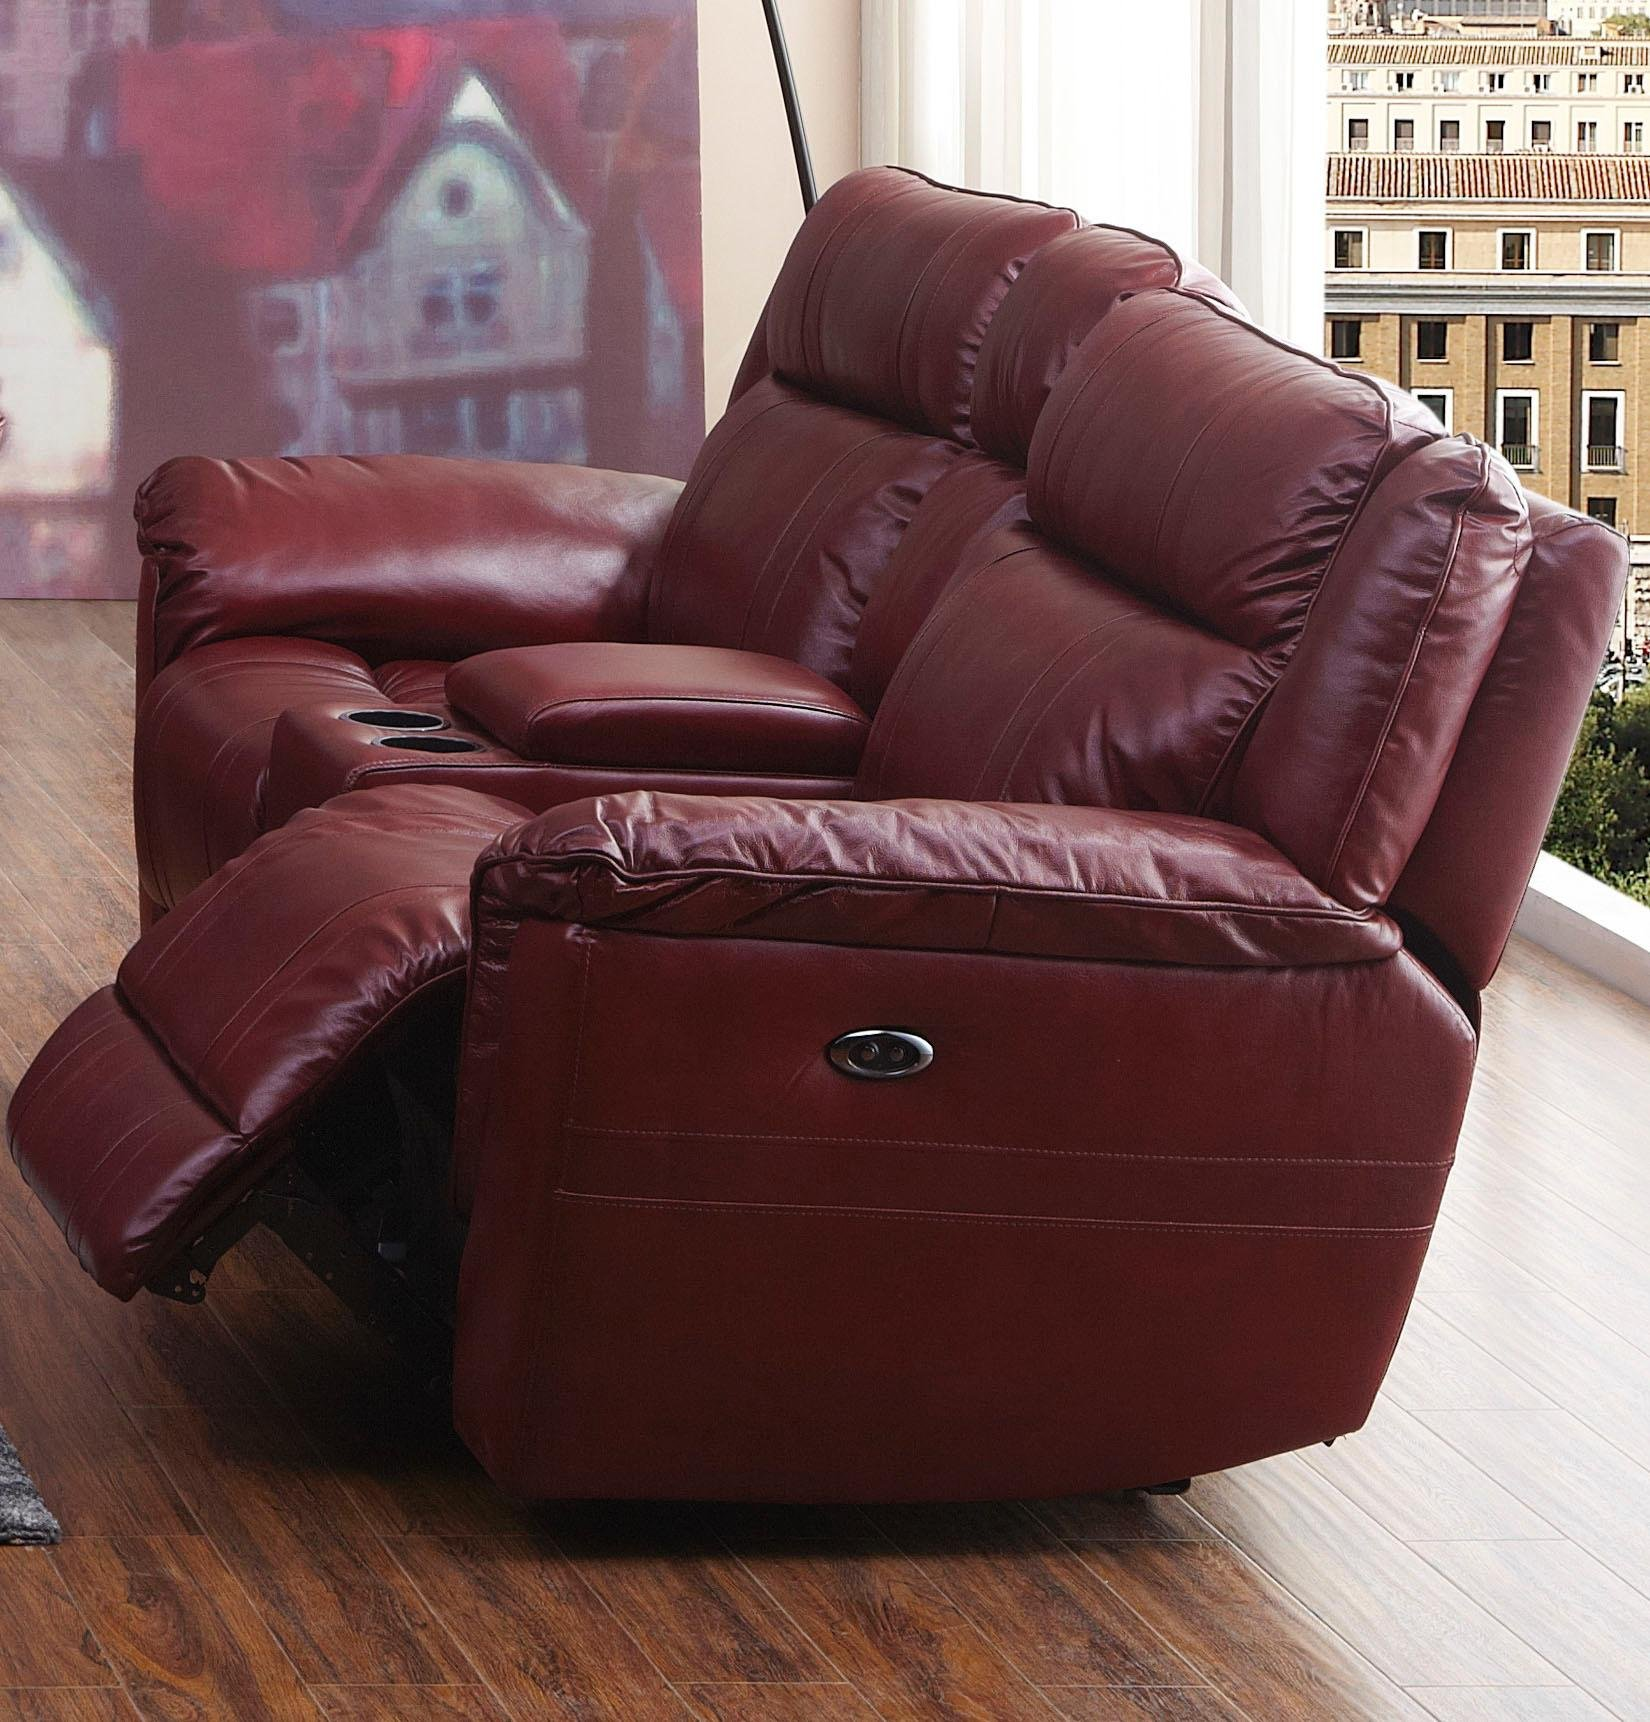 Red Leather Match Reclining Sofa Loveseat K Motion Collection Rc Willey Furniture Store